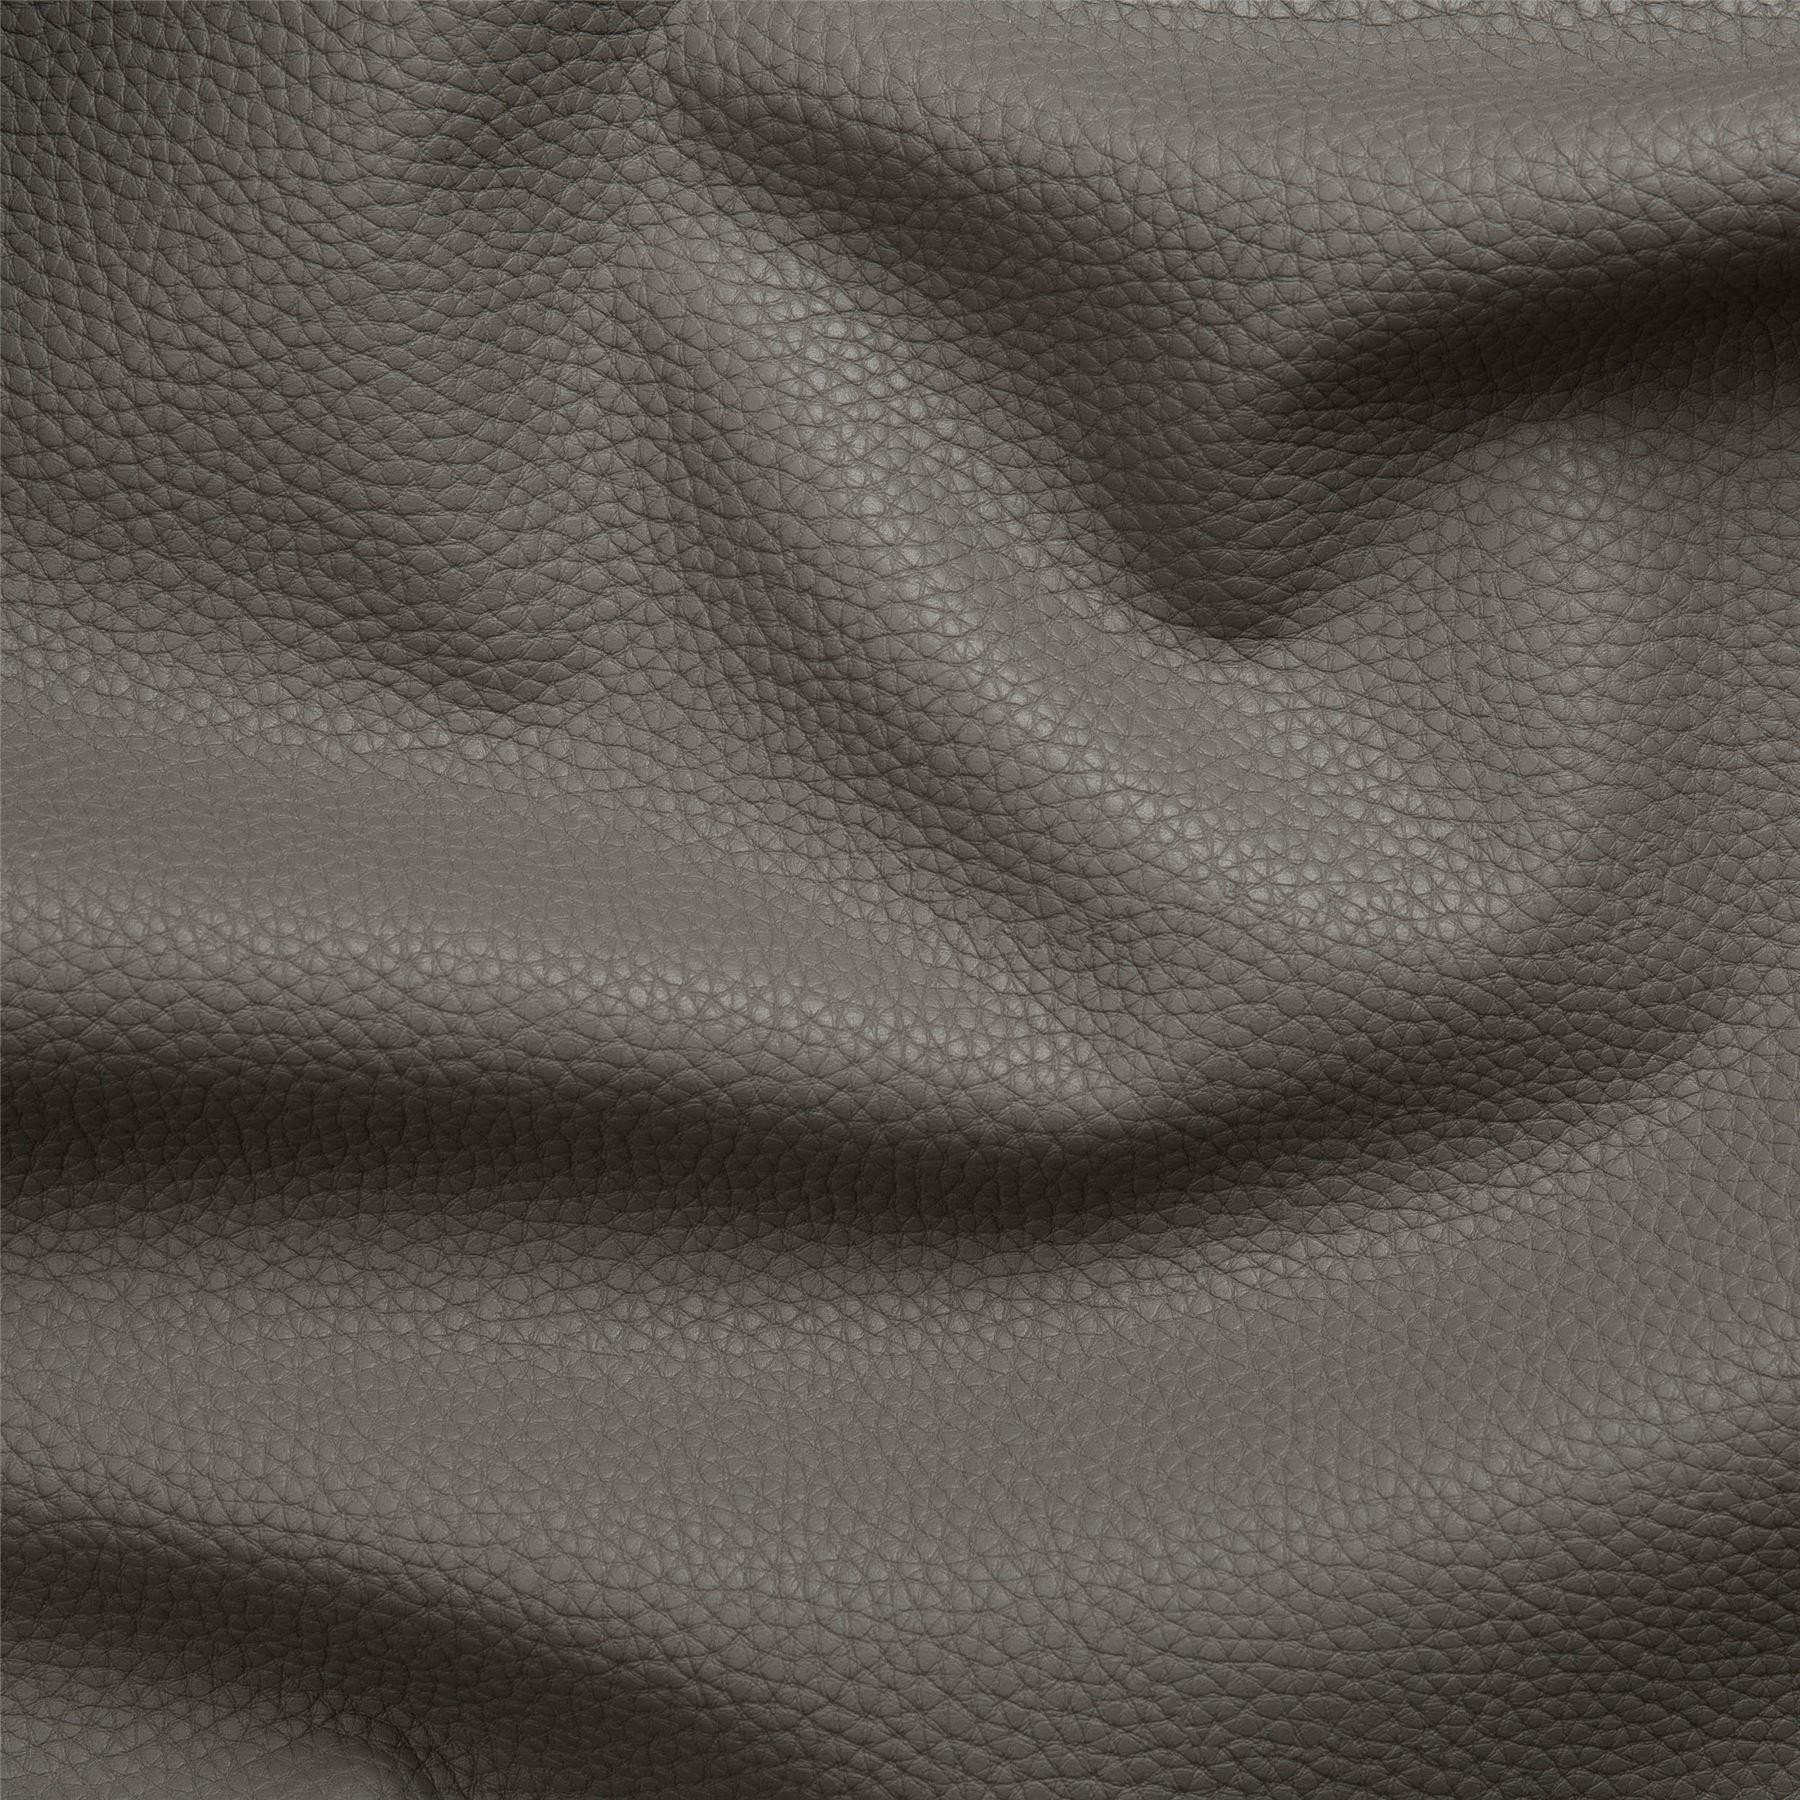 Ikea Lycksele Sofa Bezug Ikea Lycksele Chair Or Sofa Bed Slip Cover Available In 10 Different Faux Leather Colours